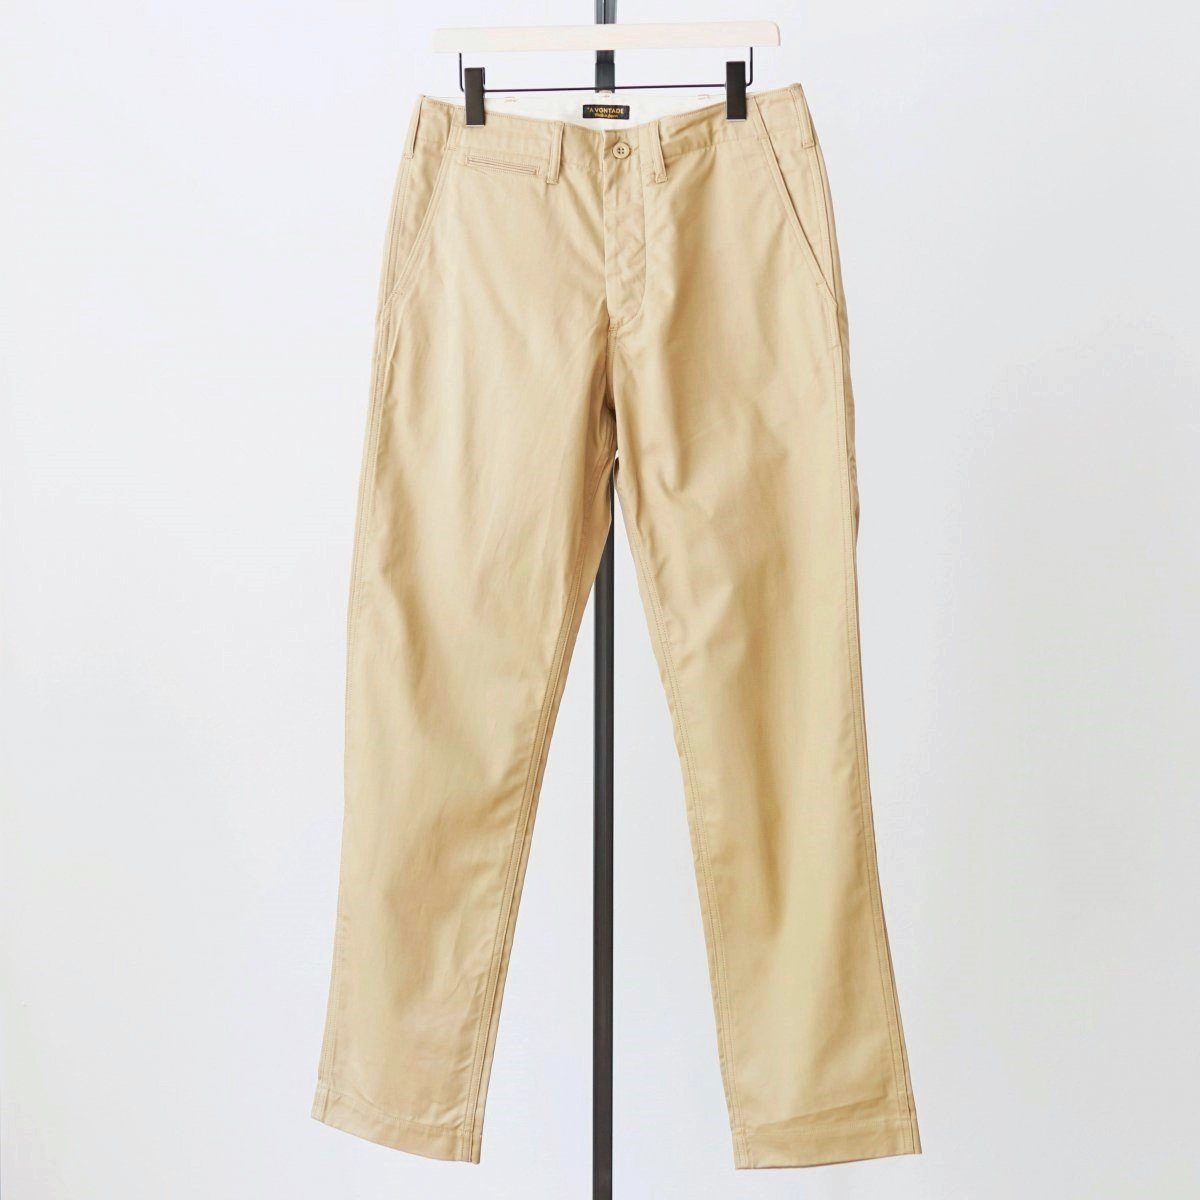 【AVONTADE アボンタージ】CLASSIC CHINO TROUSERS REGULAR FIT - BEIGE